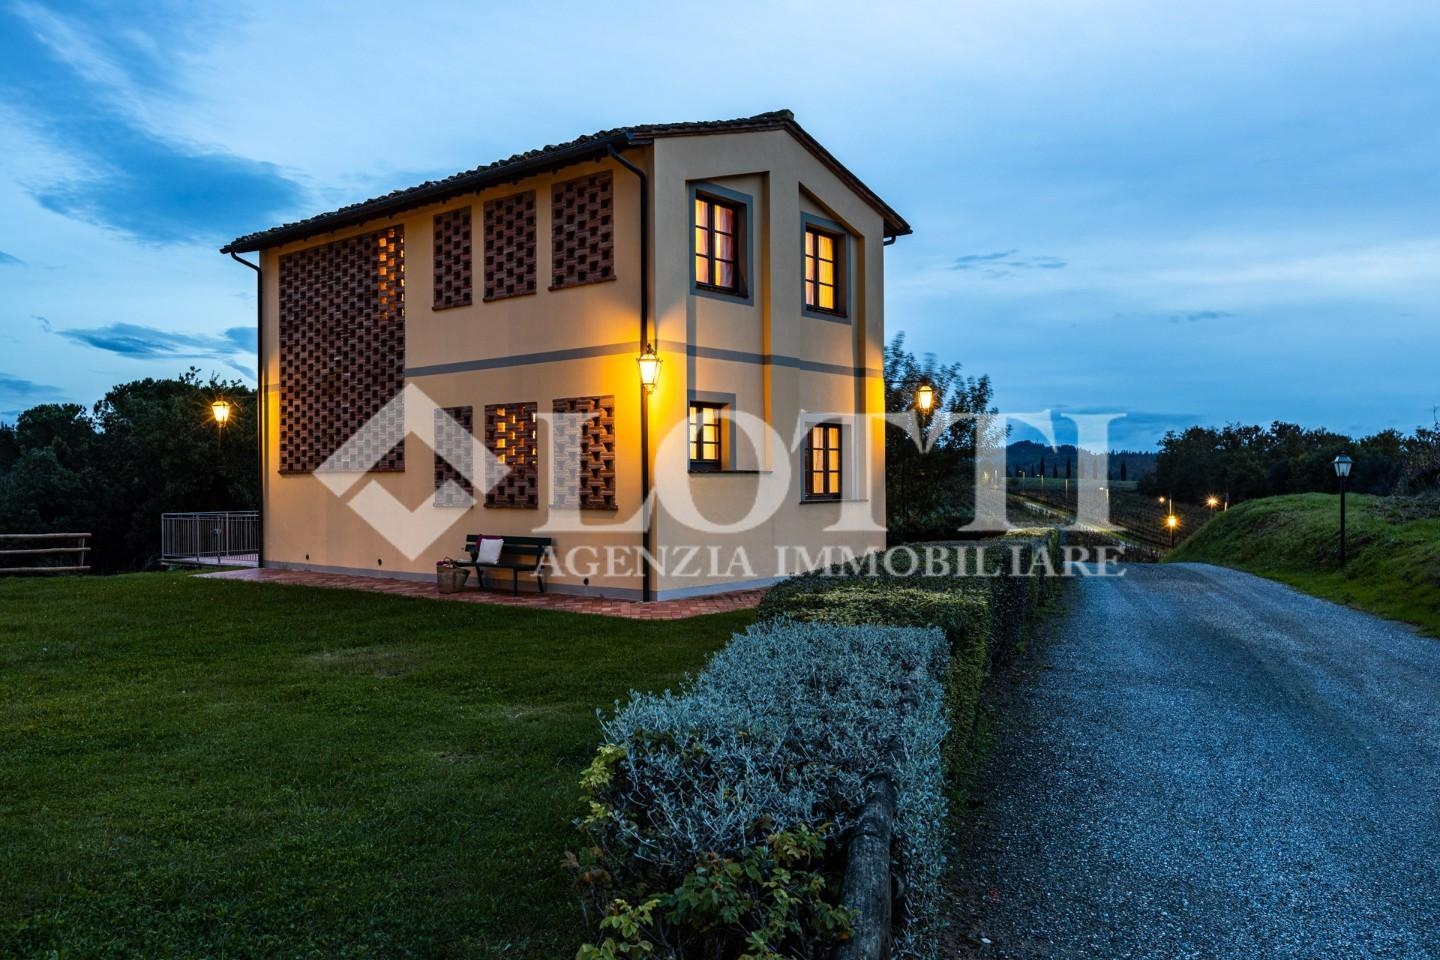 Hayloft for rent in Montopoli in Val d'Arno (PI)